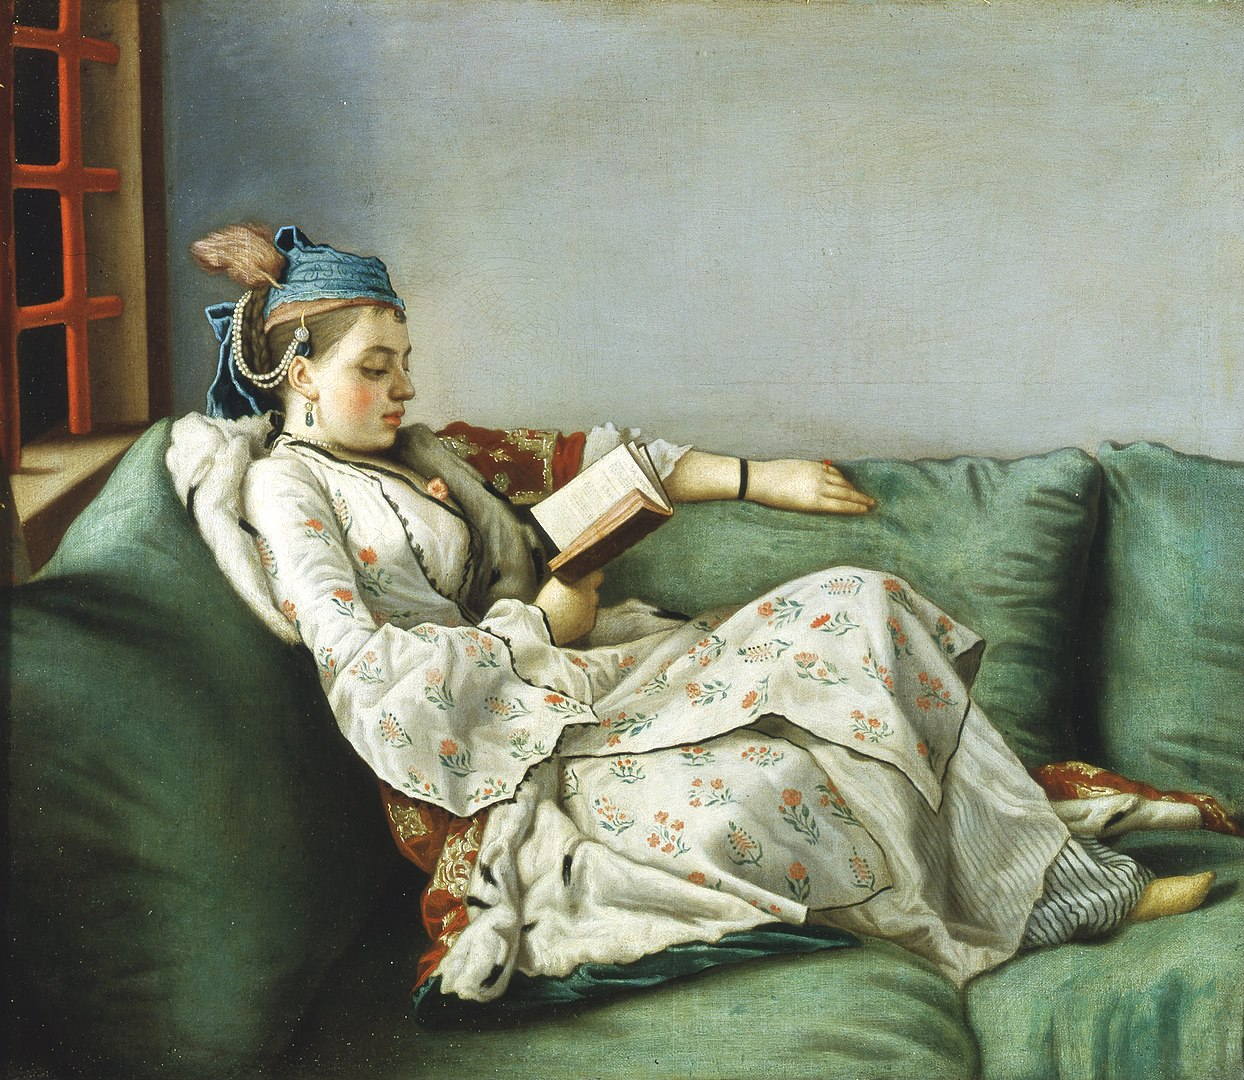 Portrait of Maria Adelaide of France in Turkish-style clothes, by  Jean-Étienne Liotard, 1753